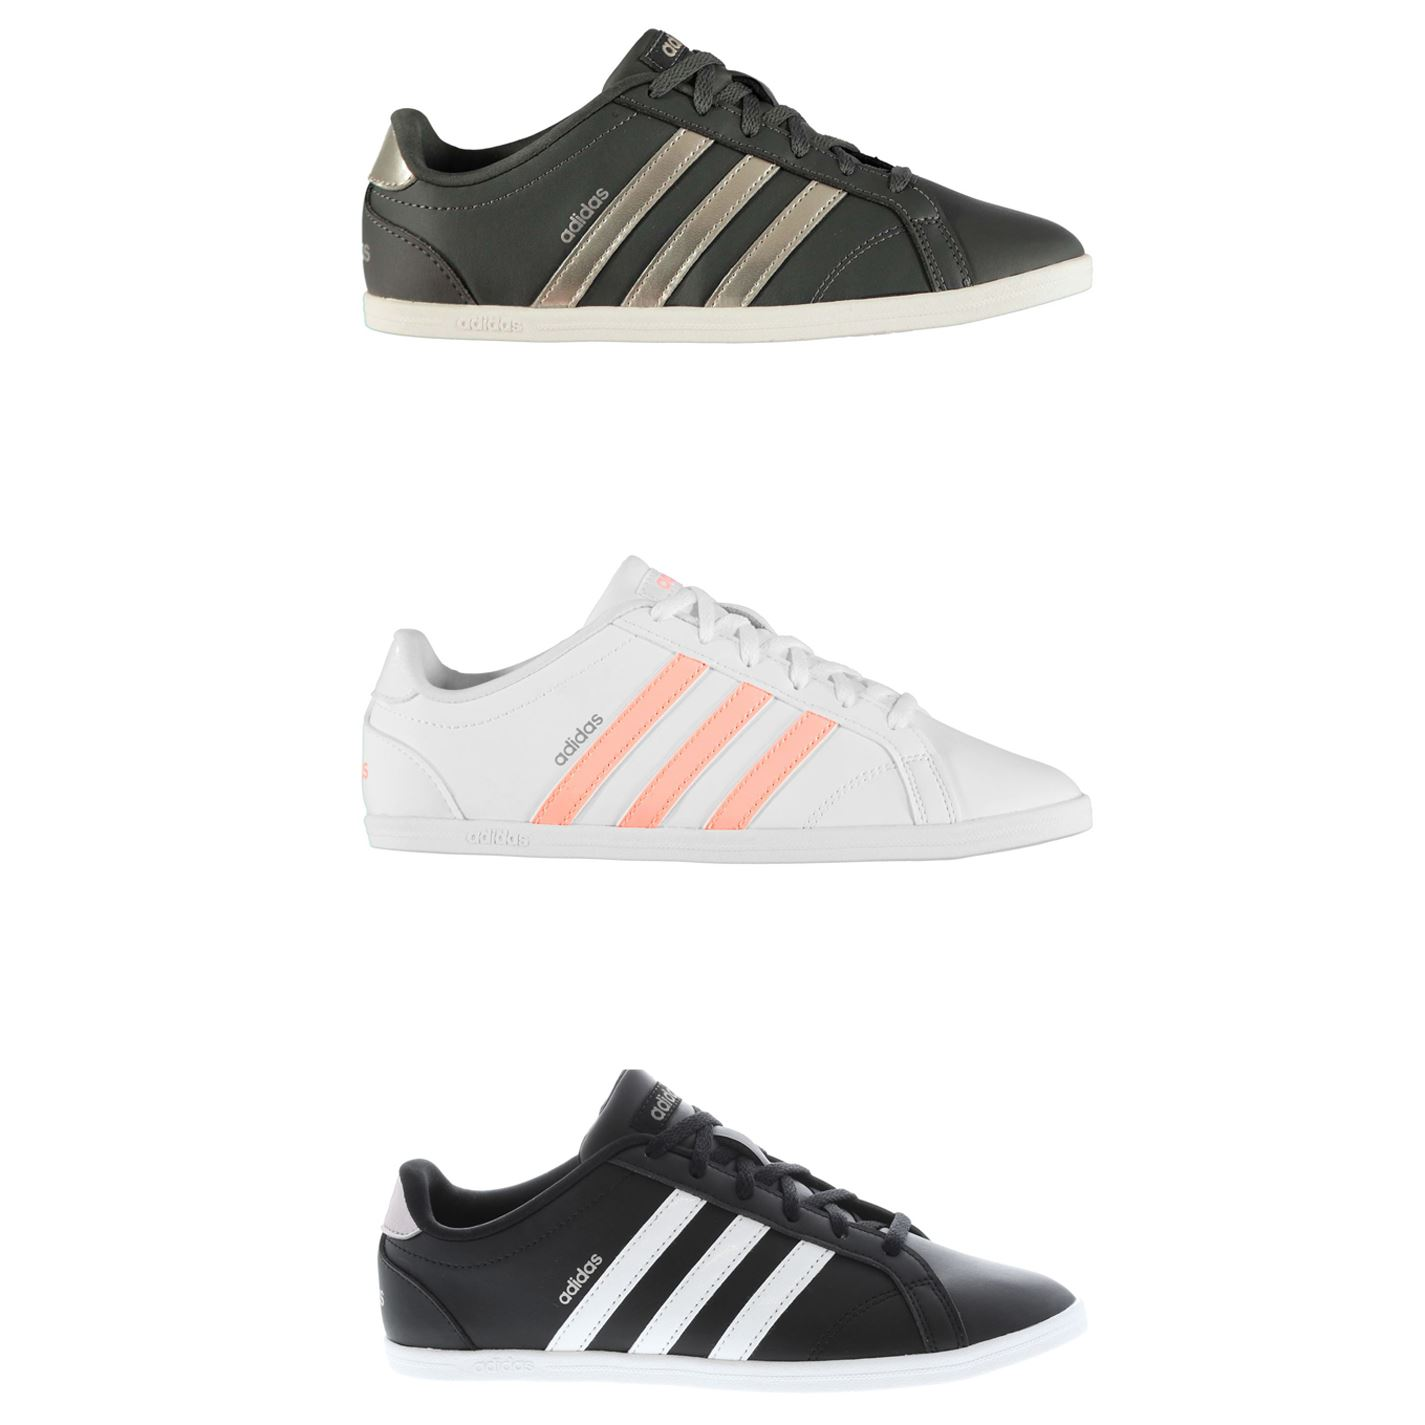 Details about adidas Coneo QT Trainers Womens Athleisure Sneakers Shoes  Footwear